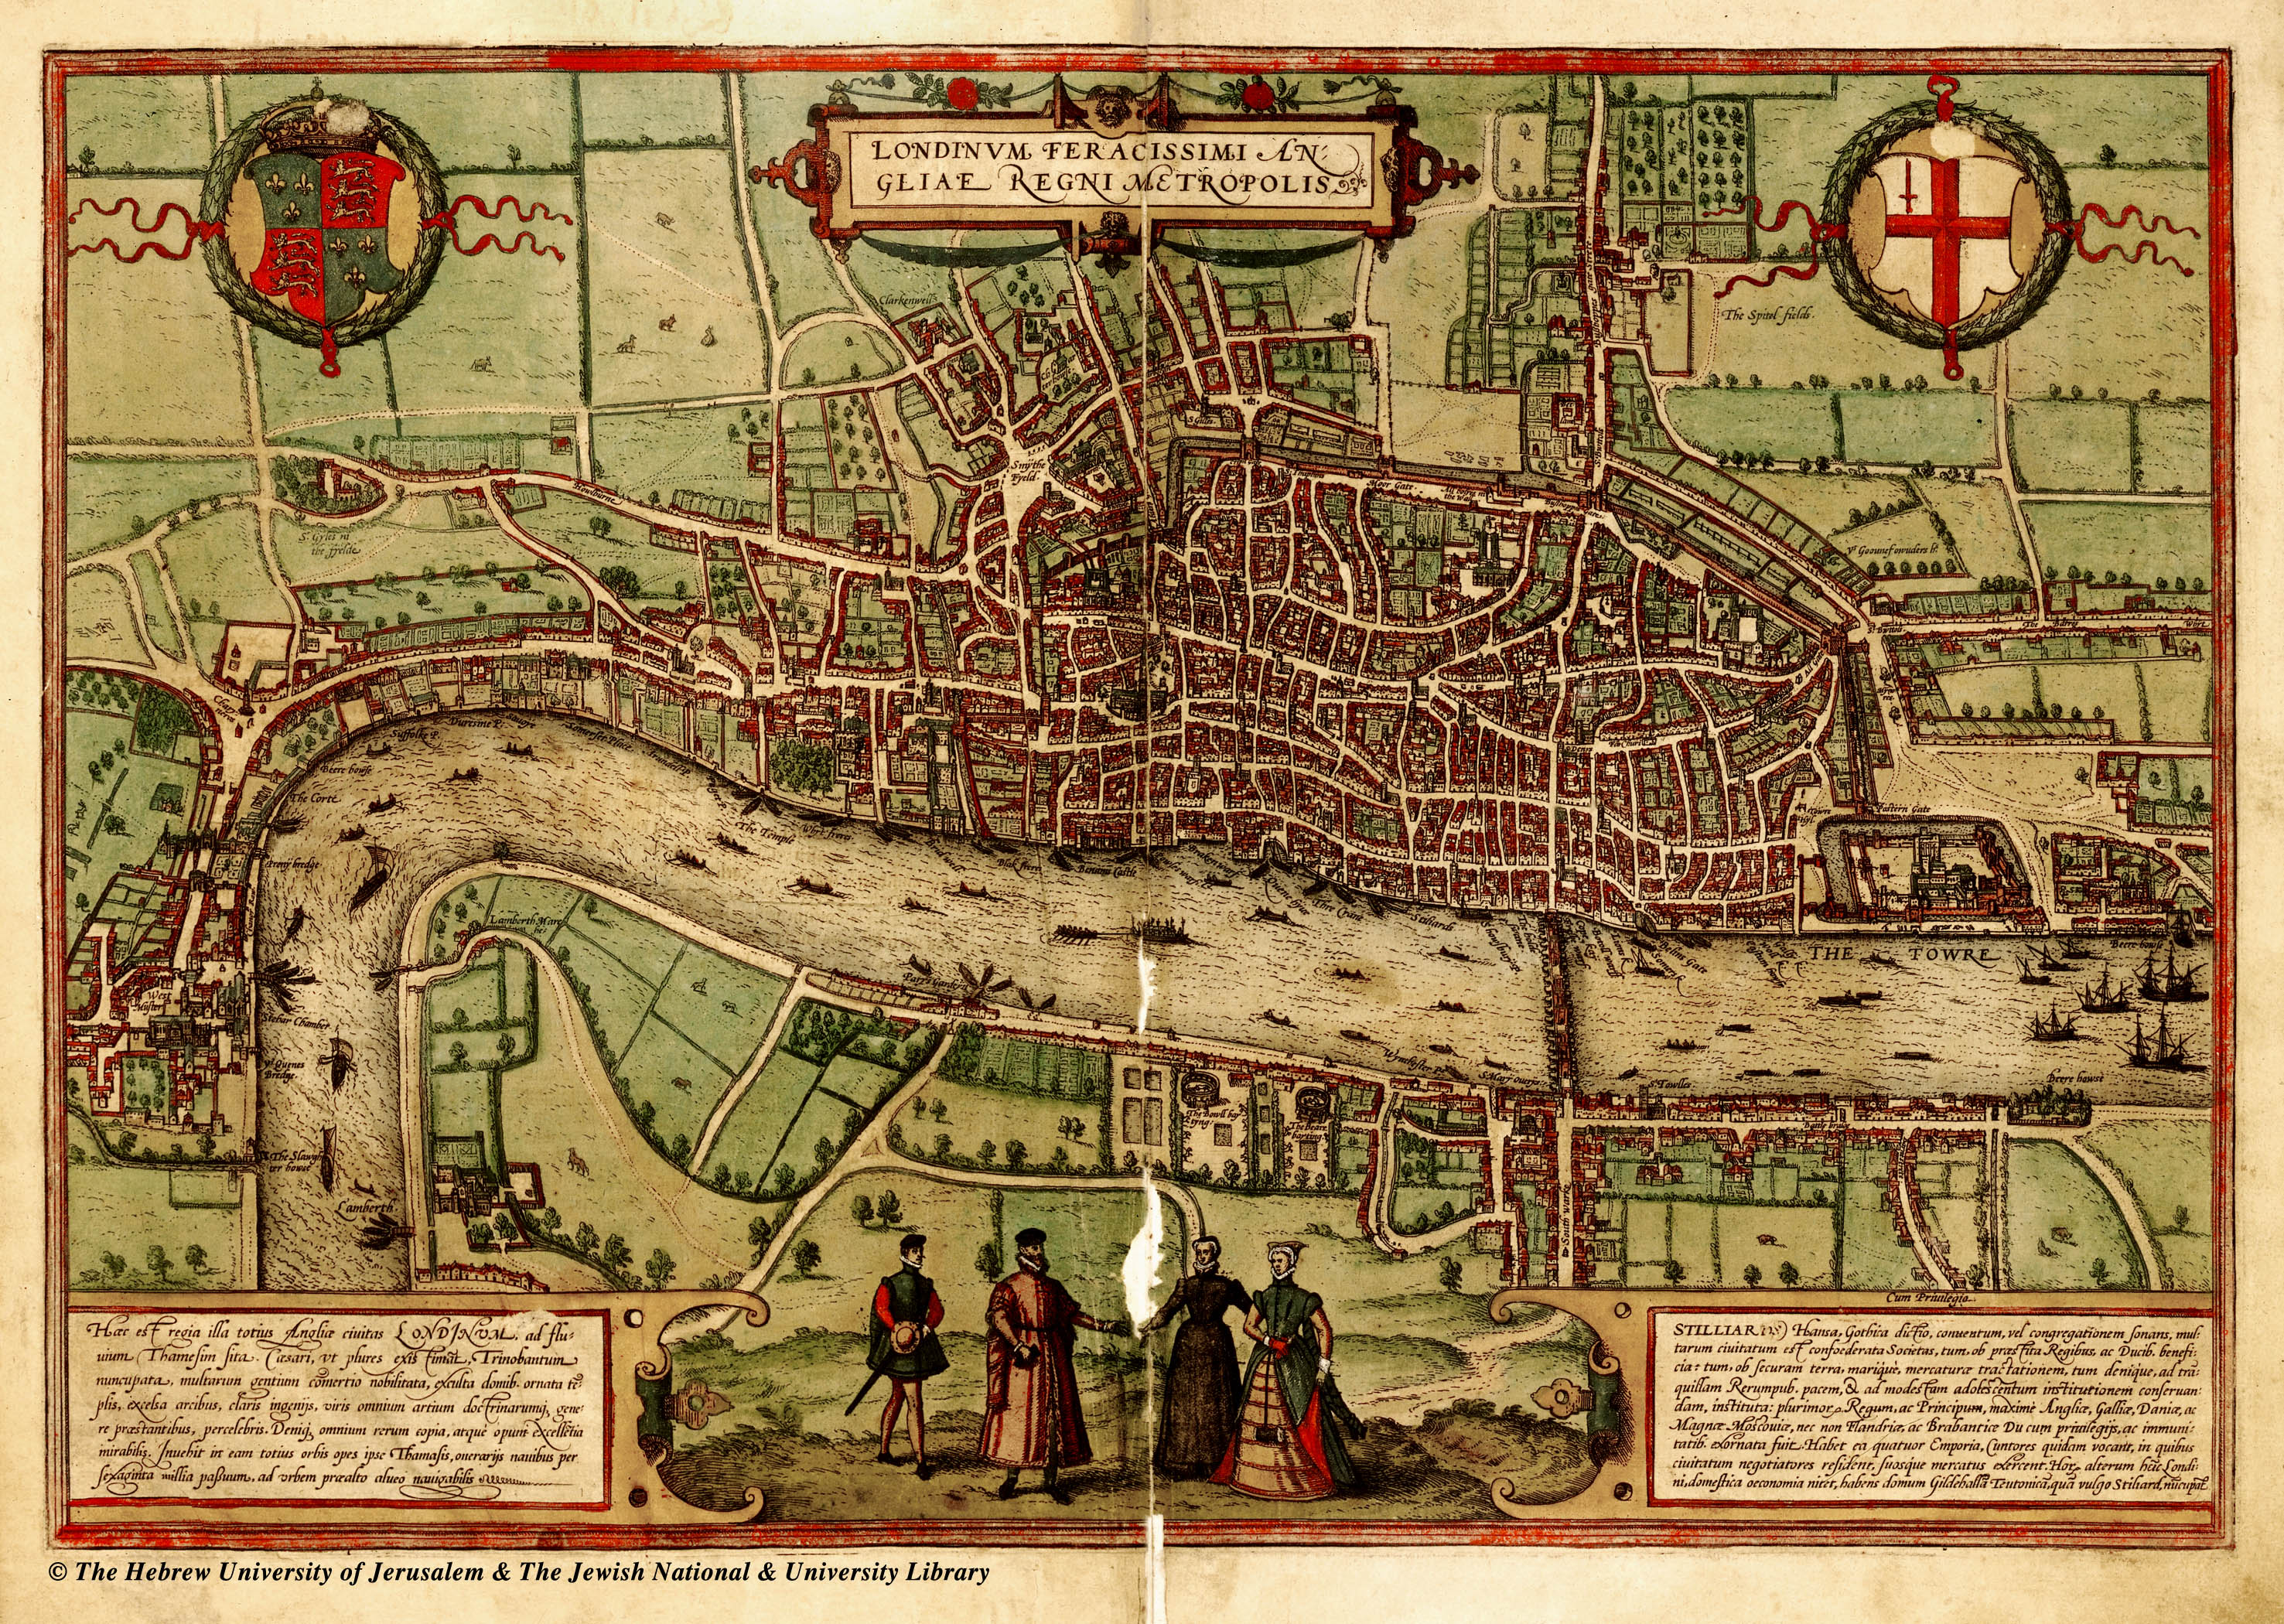 maps-of-medieval-cities-london-1560